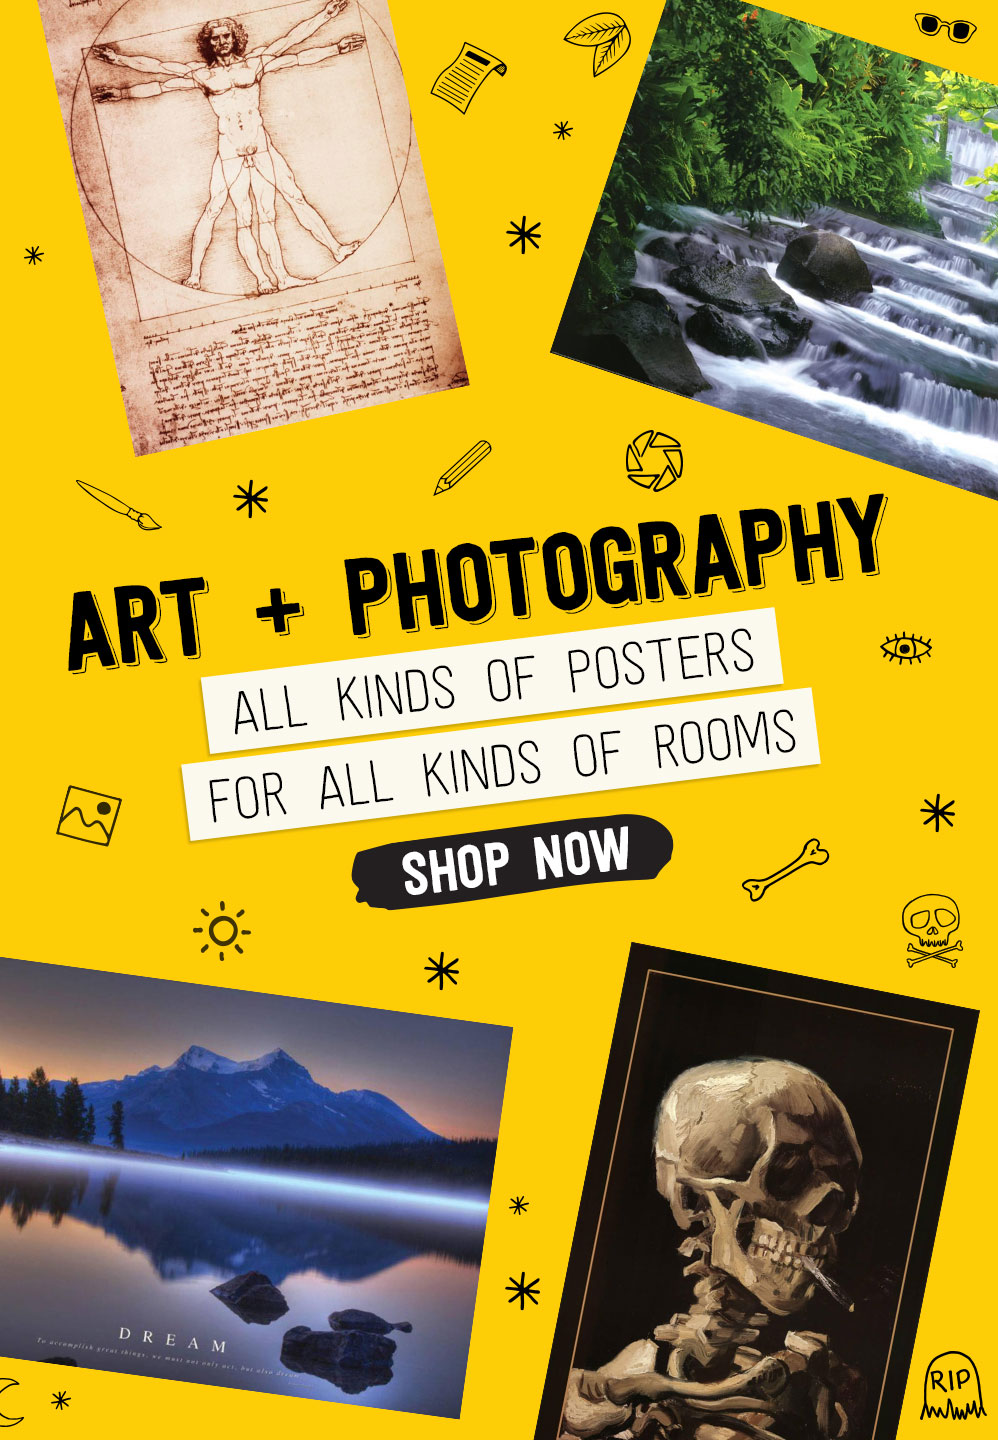 ART + PHOTOGRAPHY. ALL KINDS OF POSTERS FOR ALL KINDS OF ROOMS. SHOP NOW